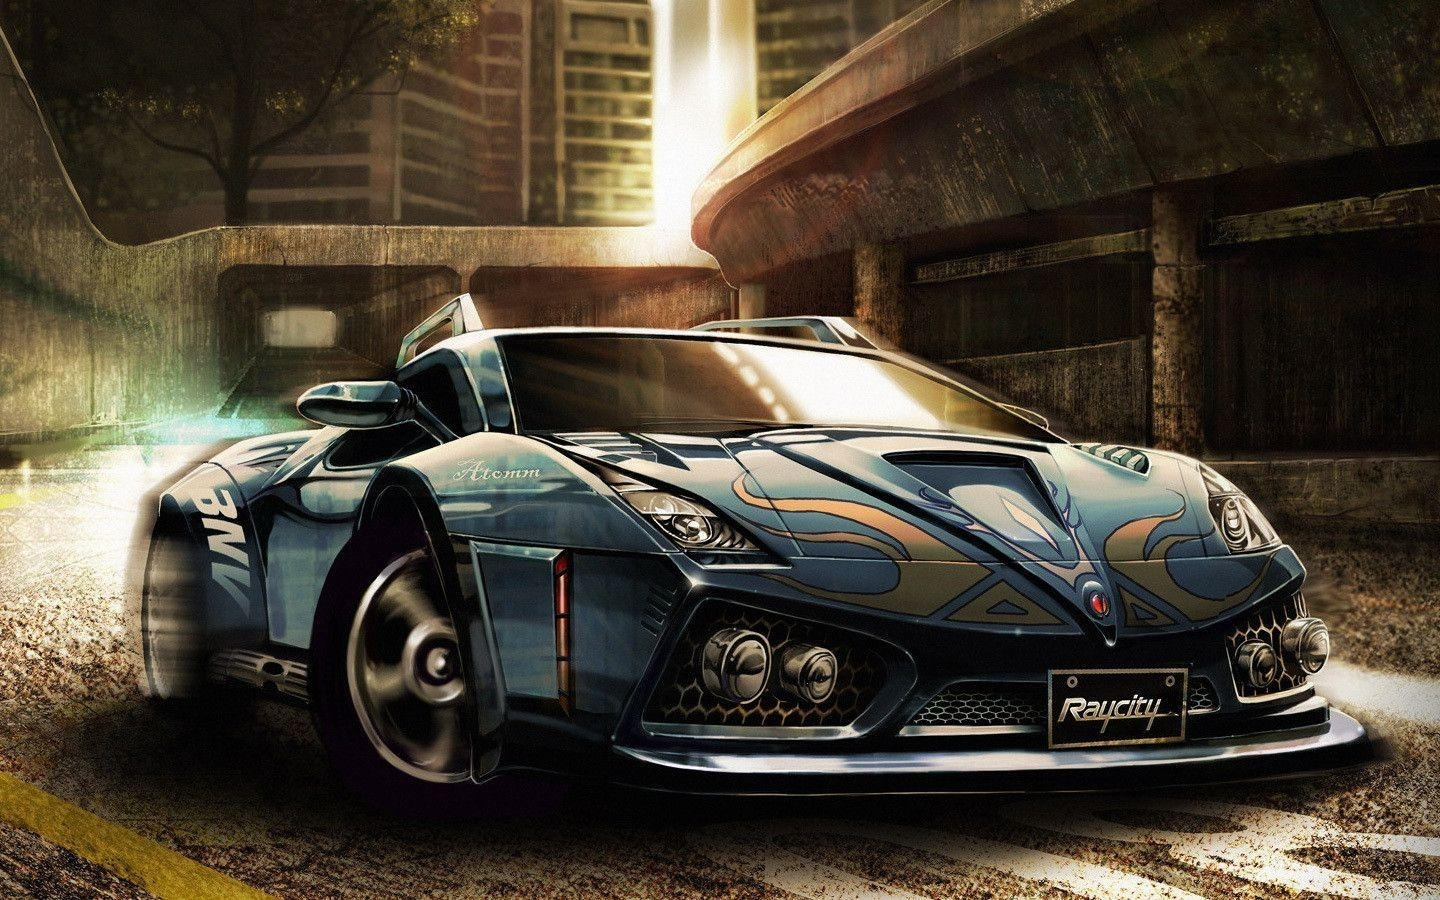 10 Most Popular Cool Hd Car Wallpapers FULL HD 1920×1080 For PC Background